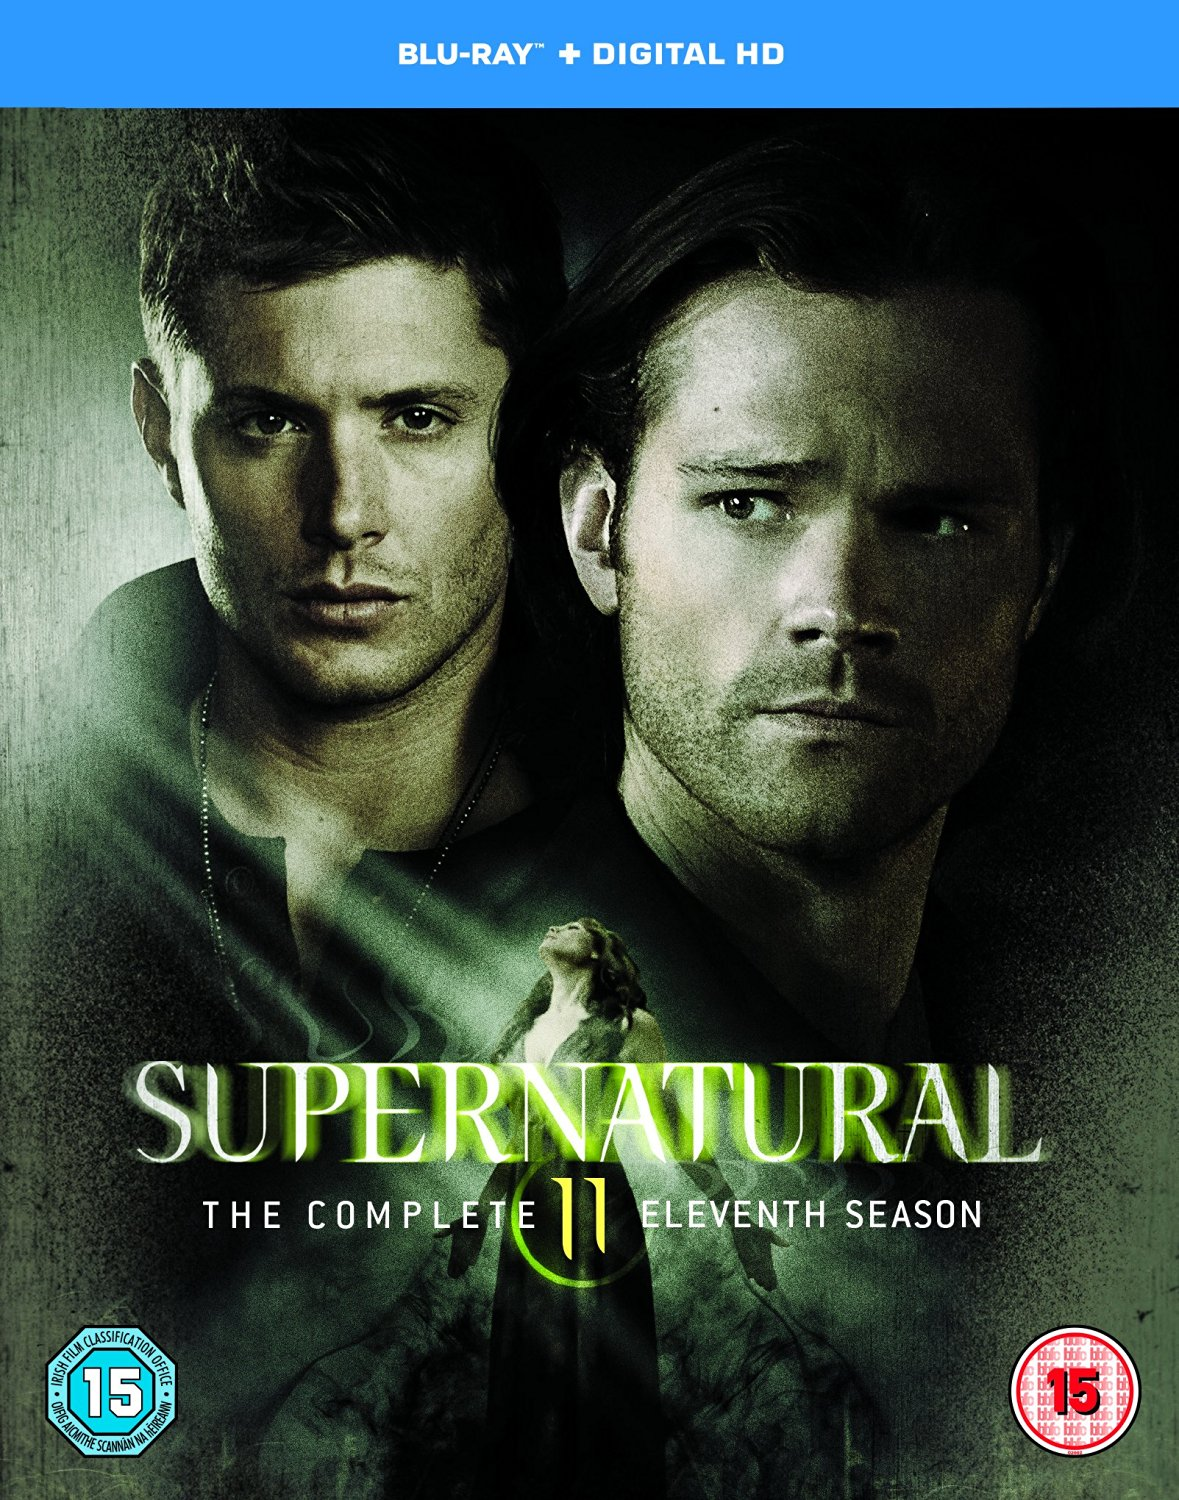 Supernatural Season 11 Blu-ray review